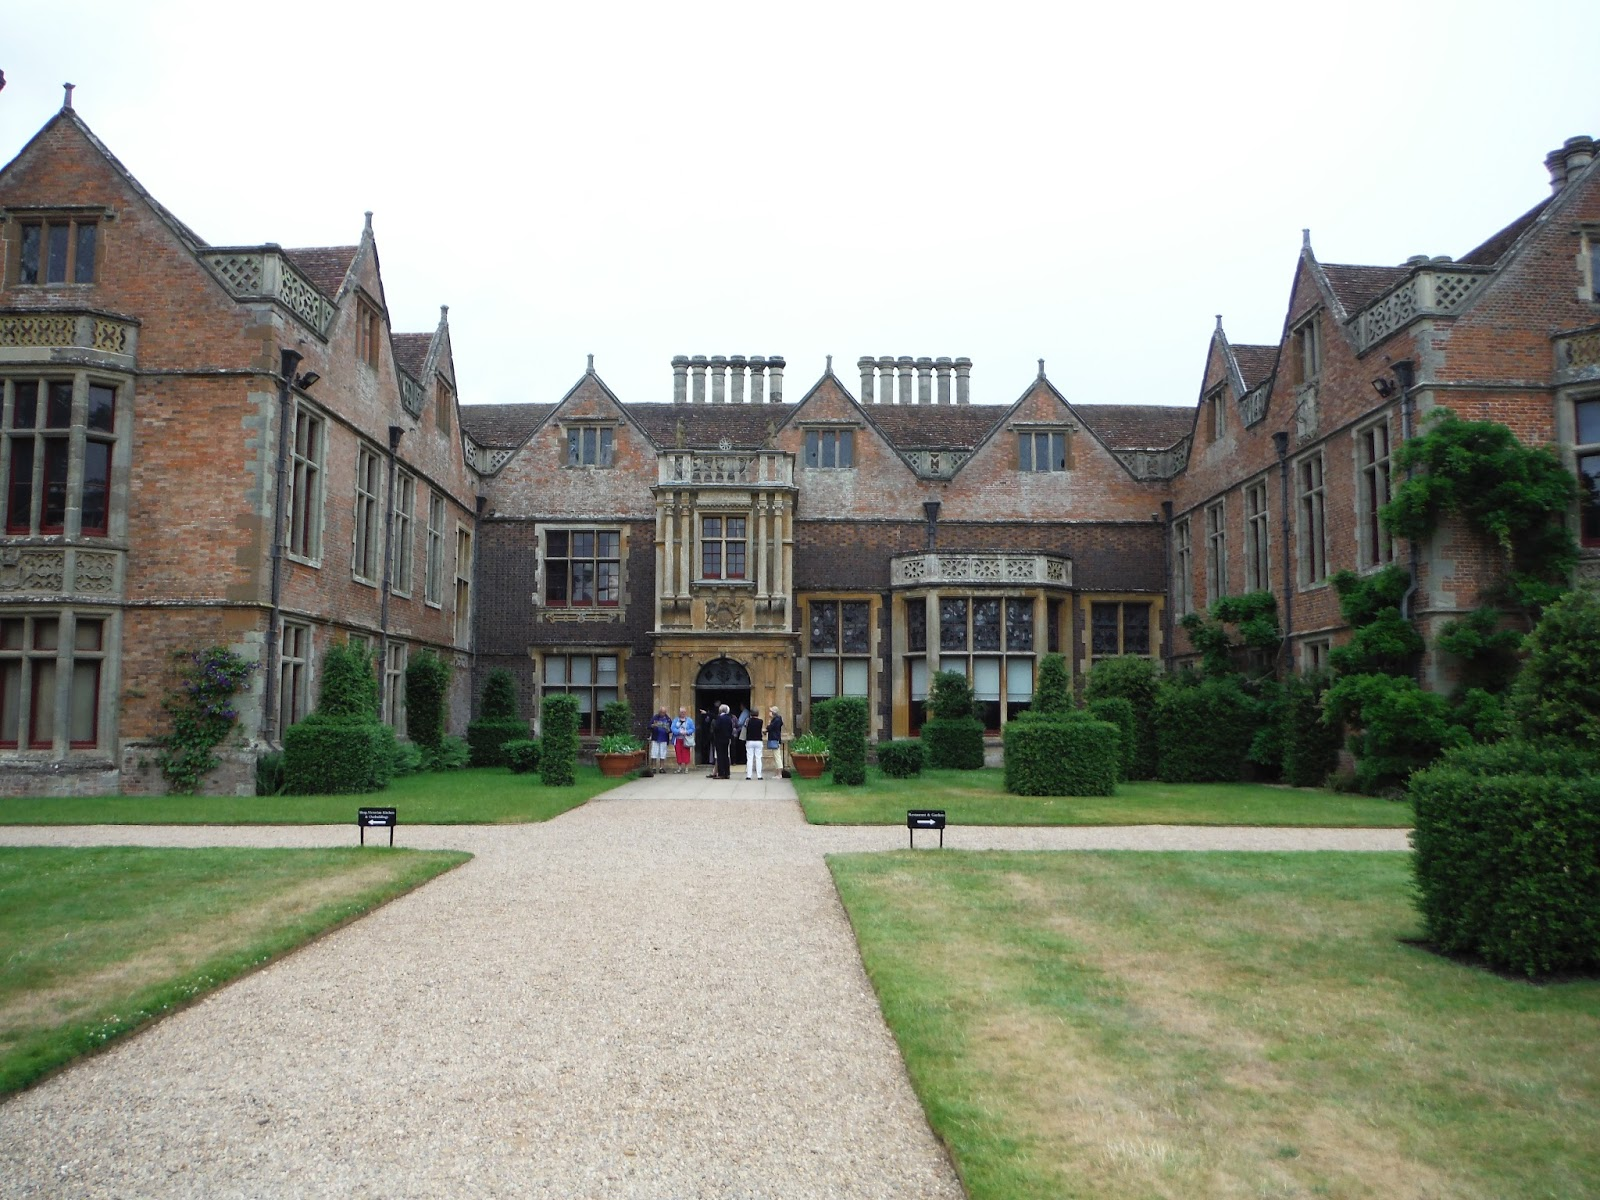 inside the courtyard to Charlecote Park